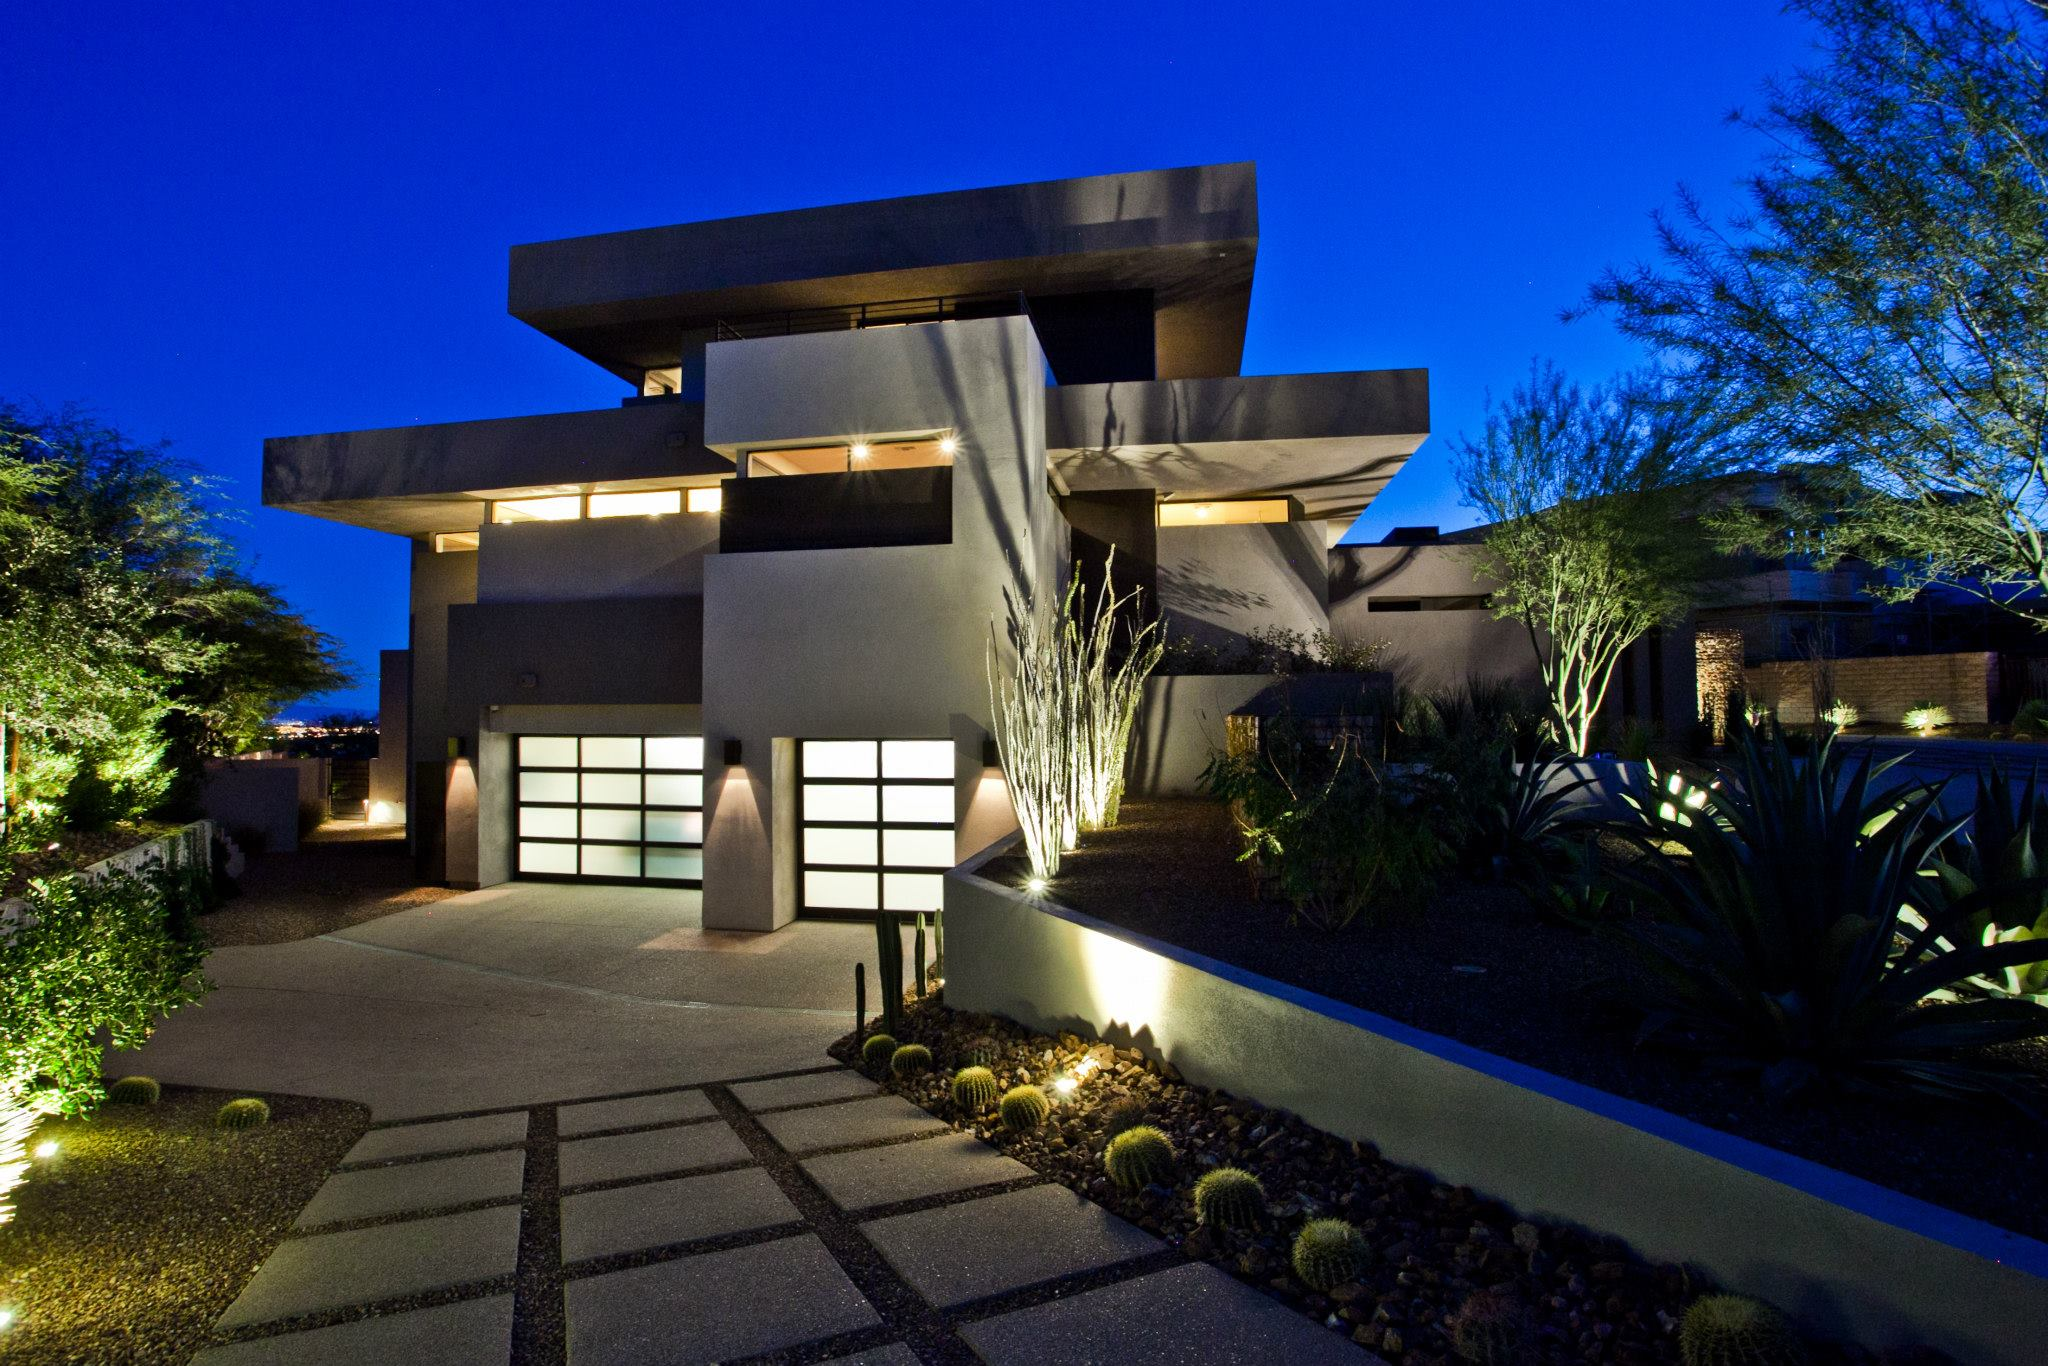 architectural photography homes. Enjoy This Beautiful Architectural Photography By Henri Sagalow Homes P